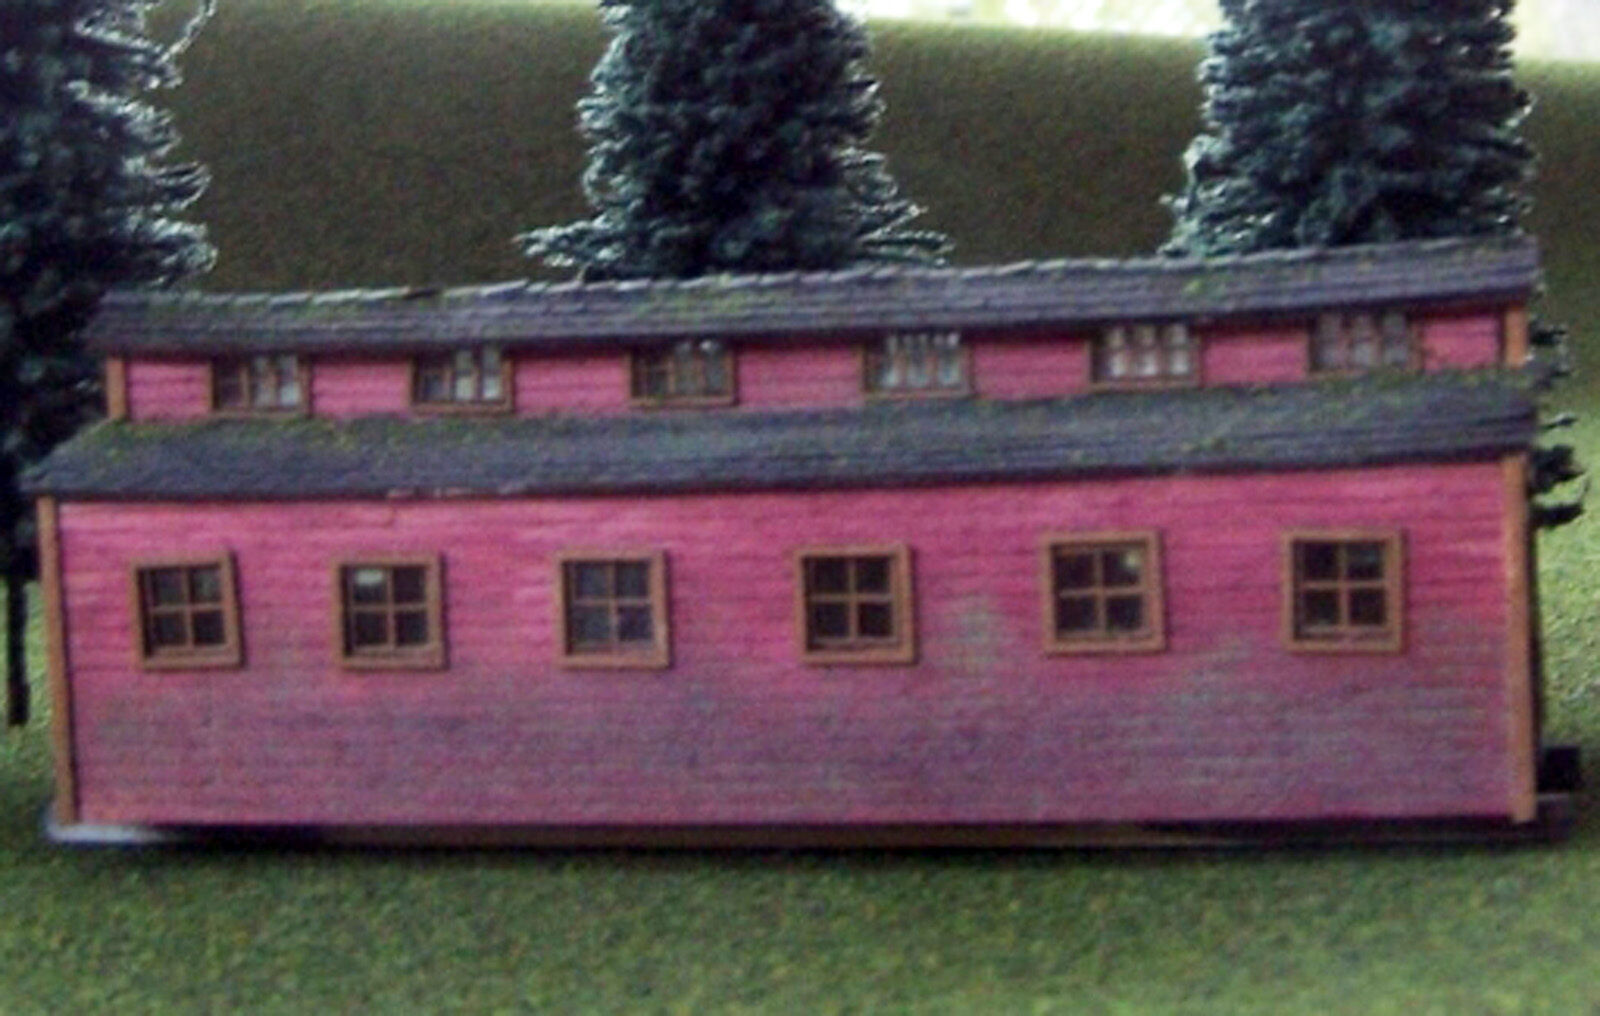 LOGGING DINING SKID N Scale Model Railroad Structure Unpainted Laser Kit RSL3021